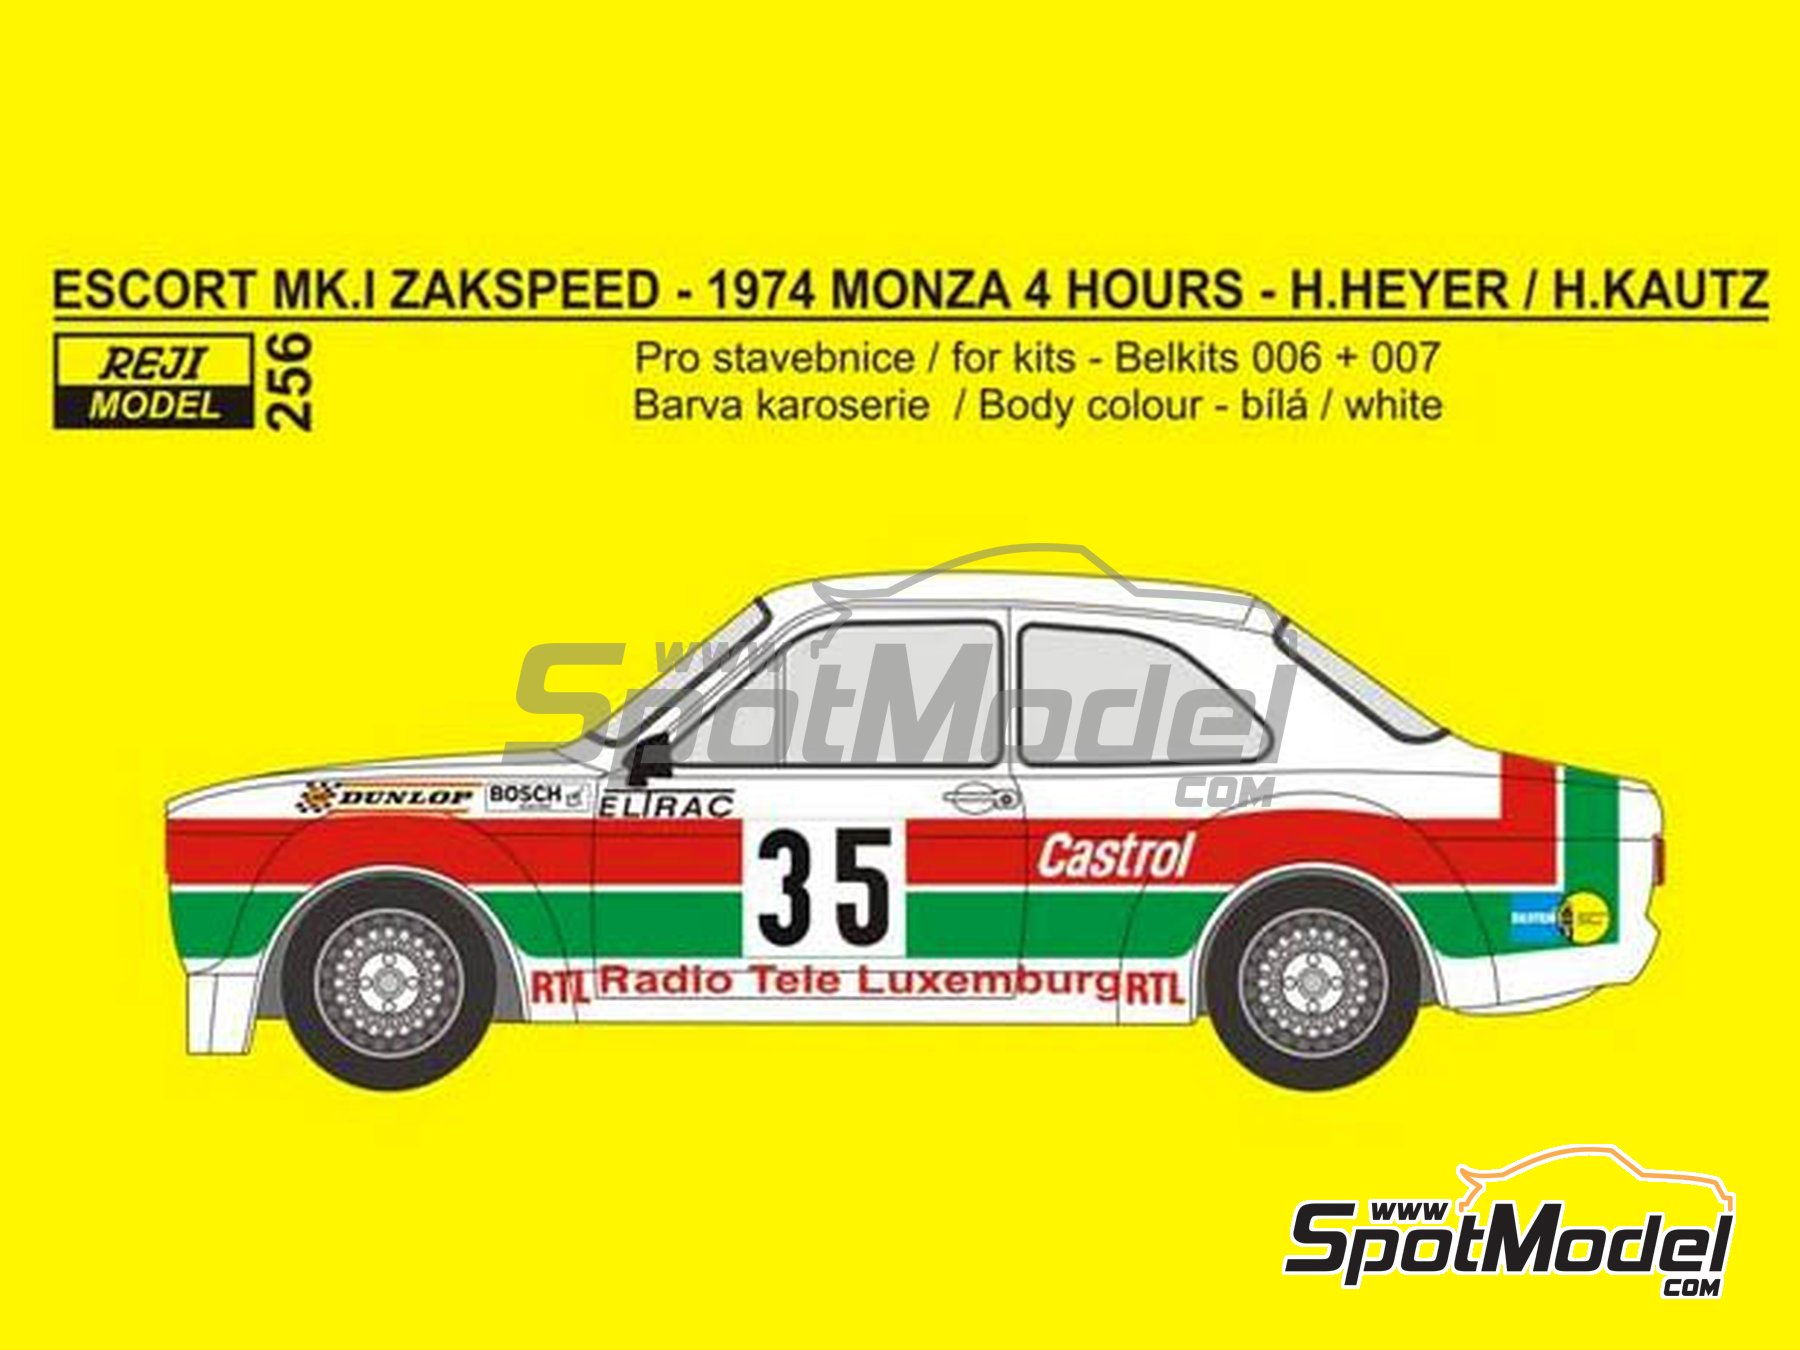 Image 1: Ford Escort Mk. I Zakspeed RTL - 4 Hours Monza 1974 | Marking / livery in 1/24 scale manufactured by Reji Model (ref. REJI-256)